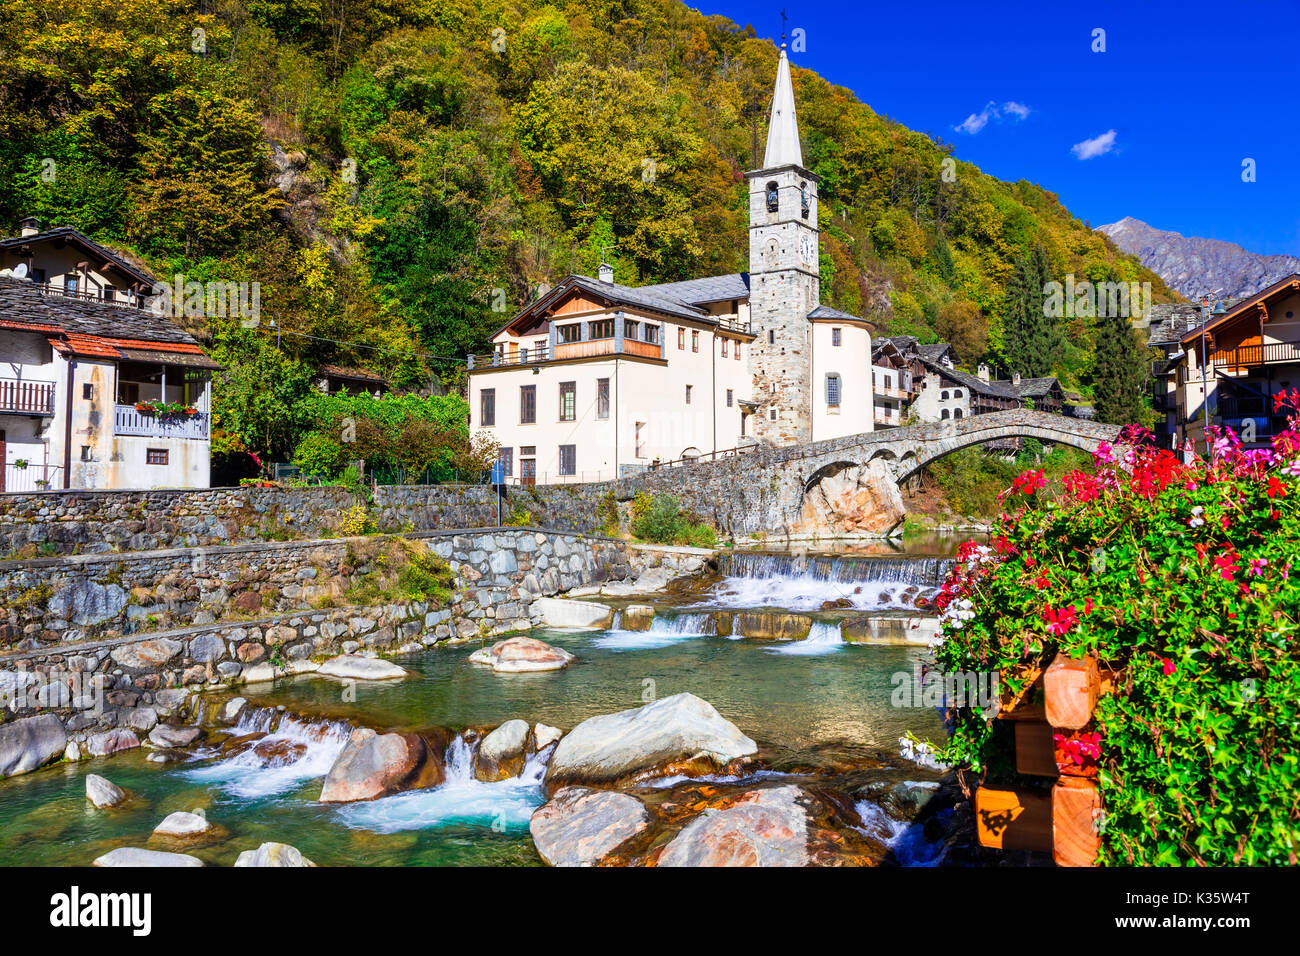 Pictorial Lillianes village,Valle d' Aosta,Italy. - Stock Image